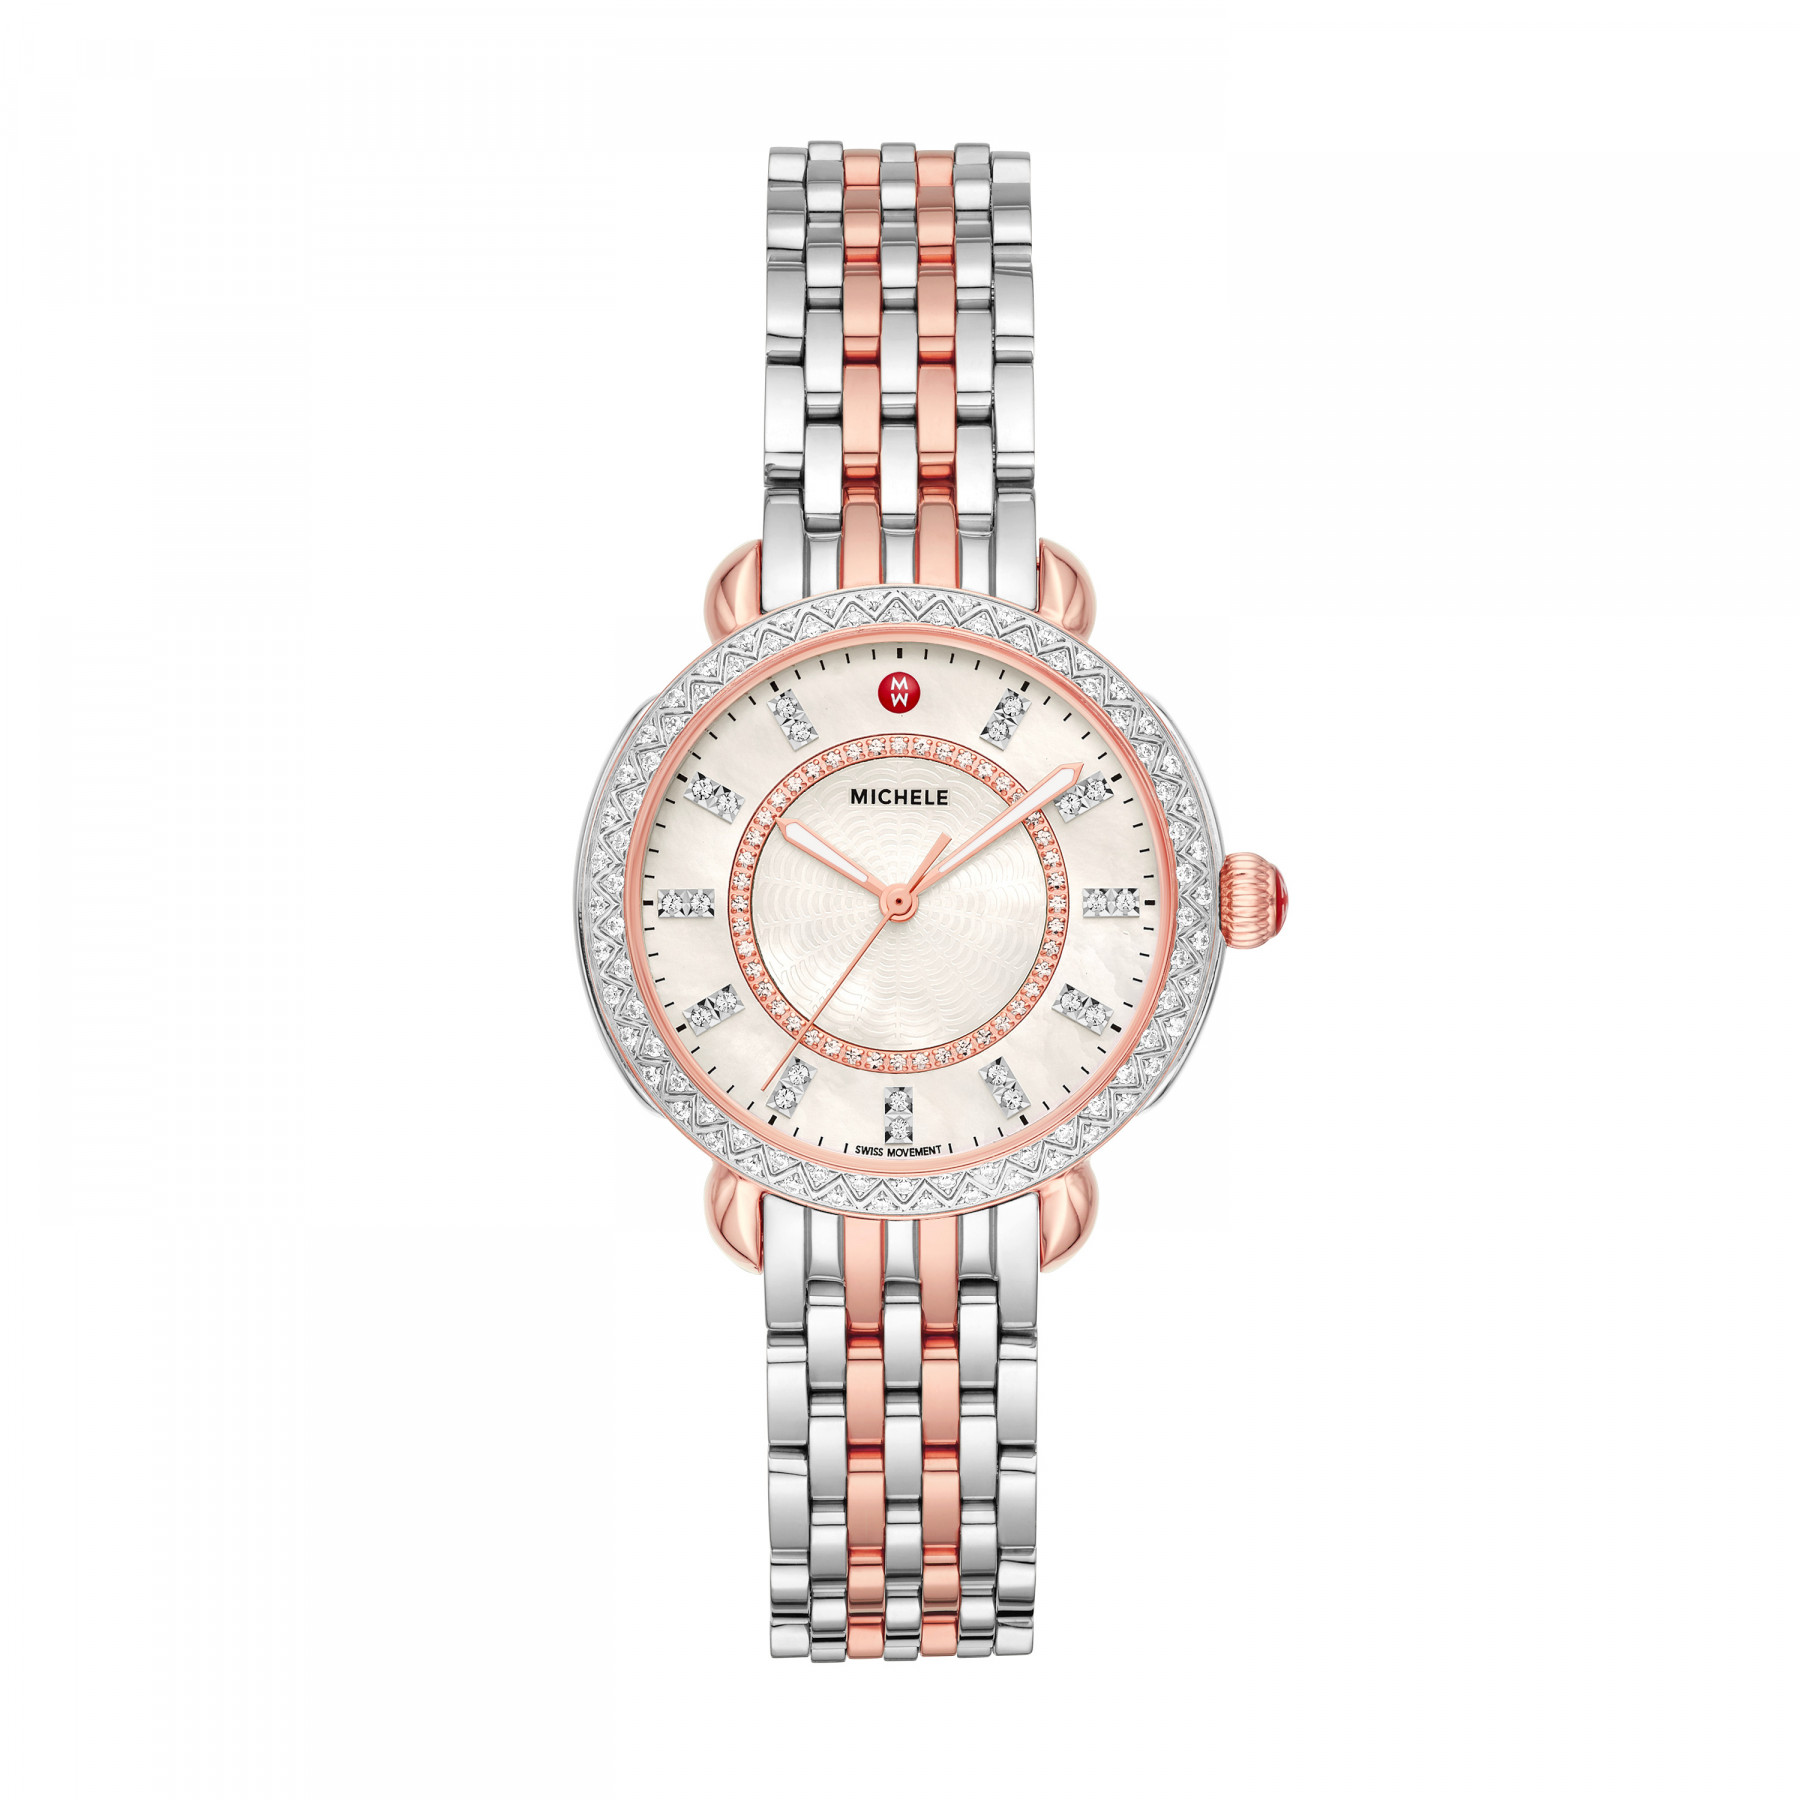 Michele Sidney Classic Two Tone Diamond Watch – 33mm front view